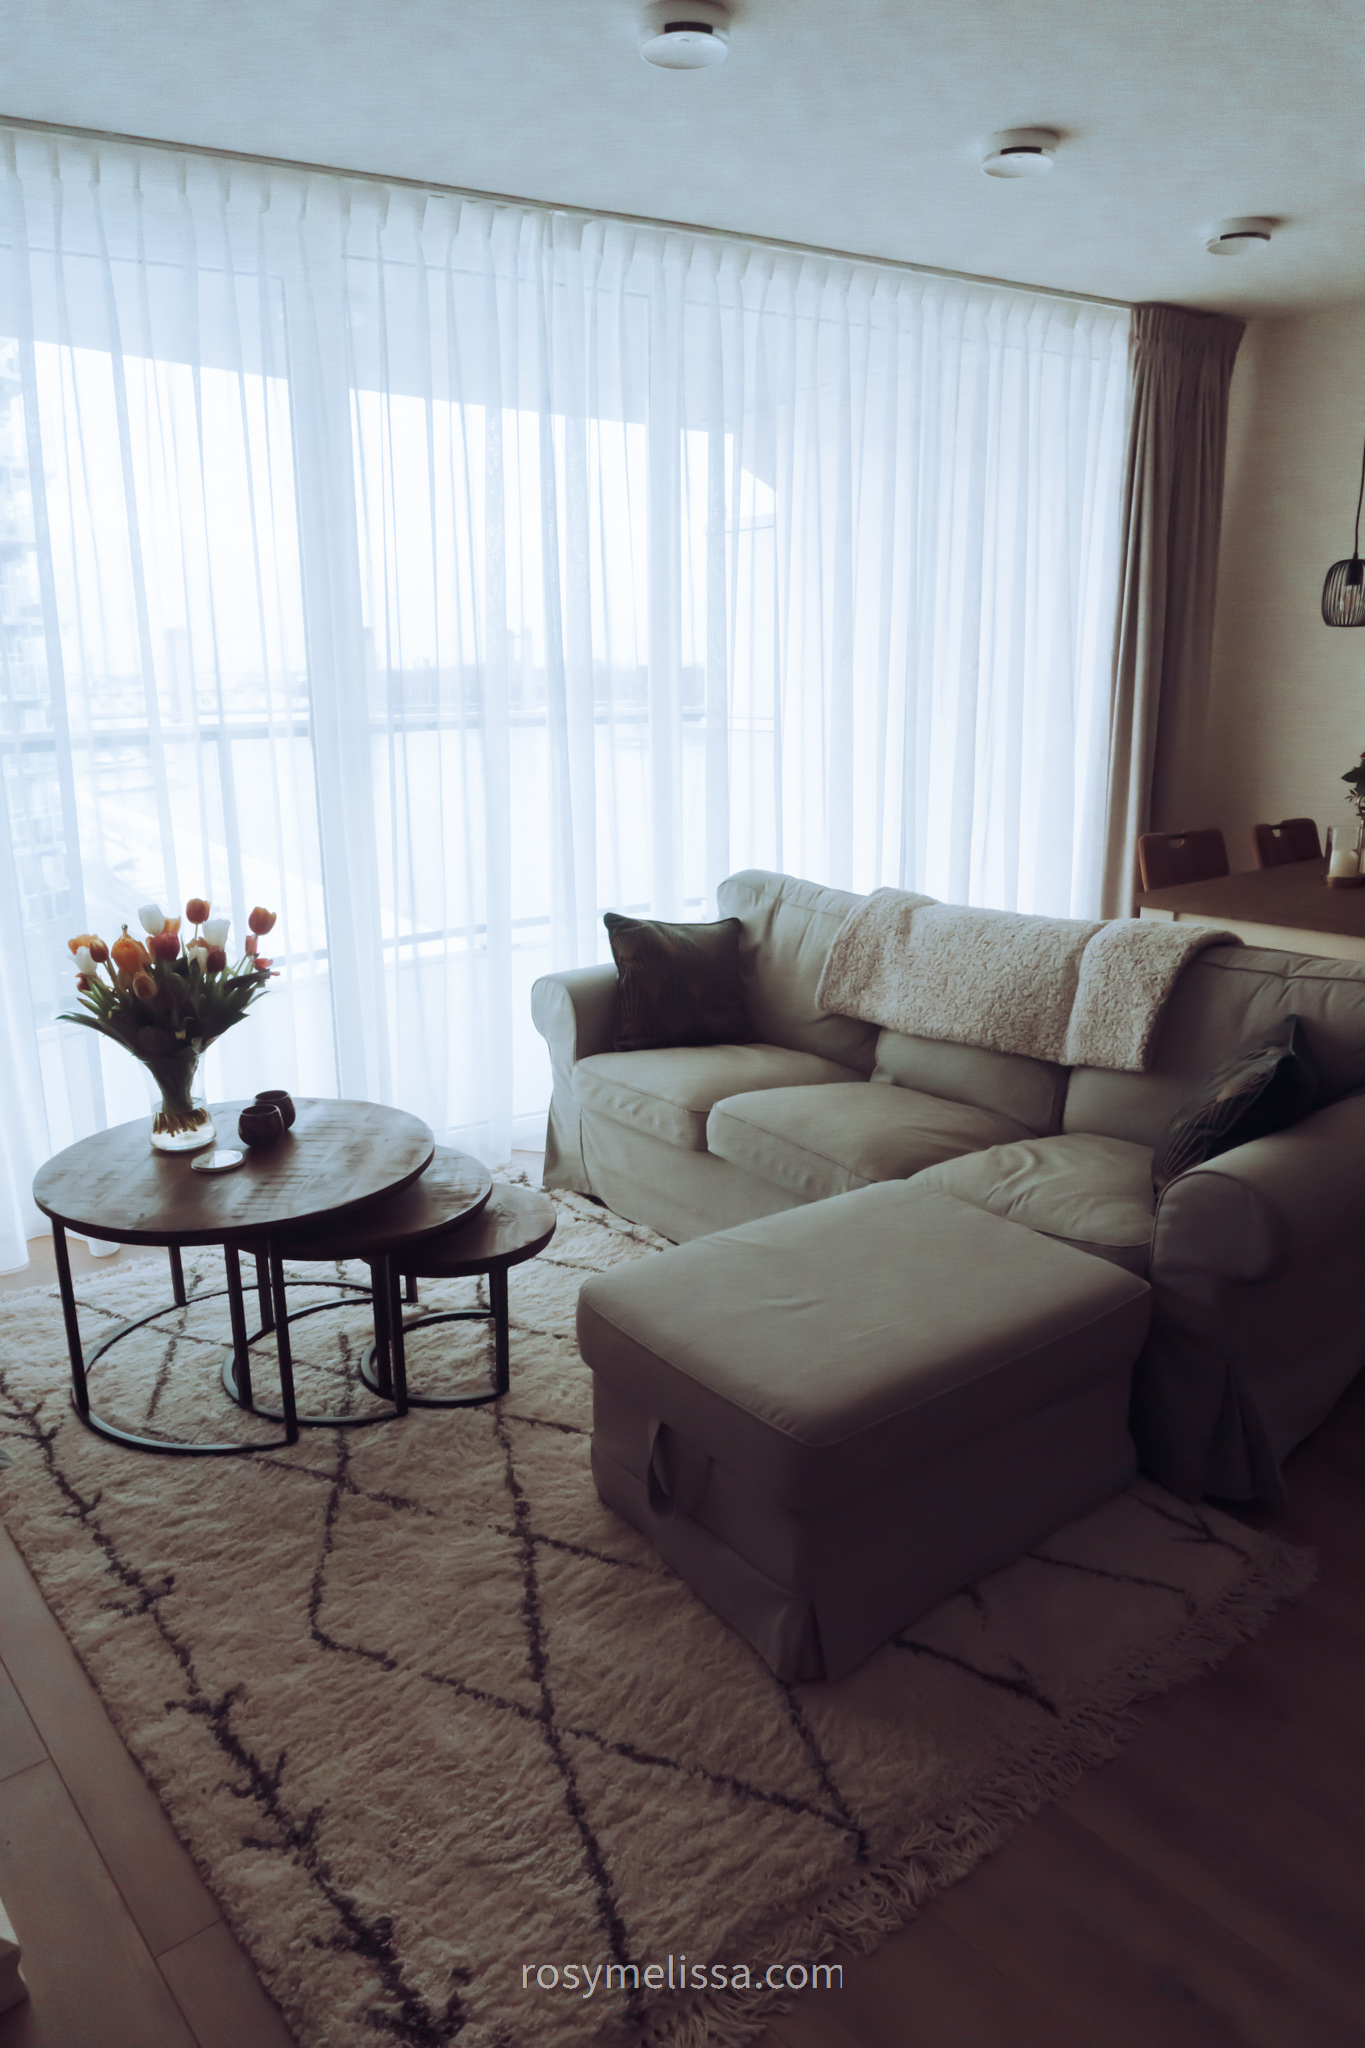 living room decor, view outside, grey couch, flowers